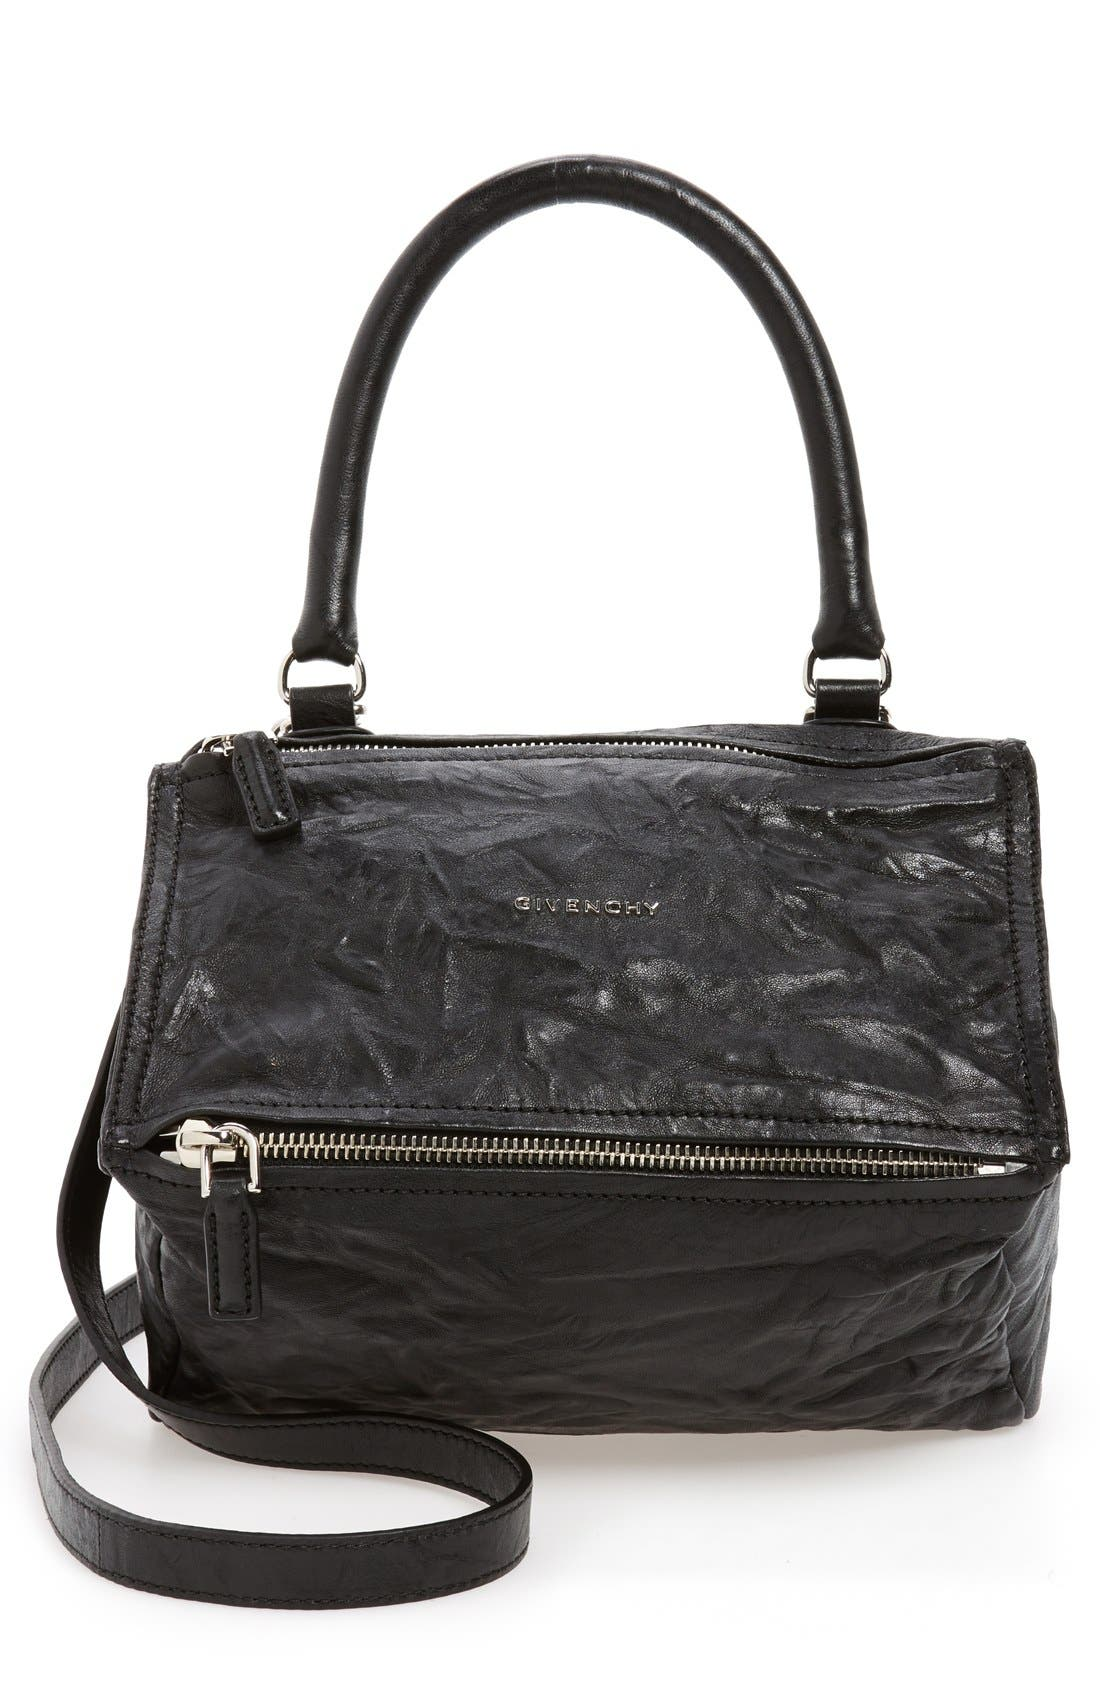 'Small Pepe Pandora' Leather Shoulder Bag,                             Main thumbnail 1, color,                             BLACK